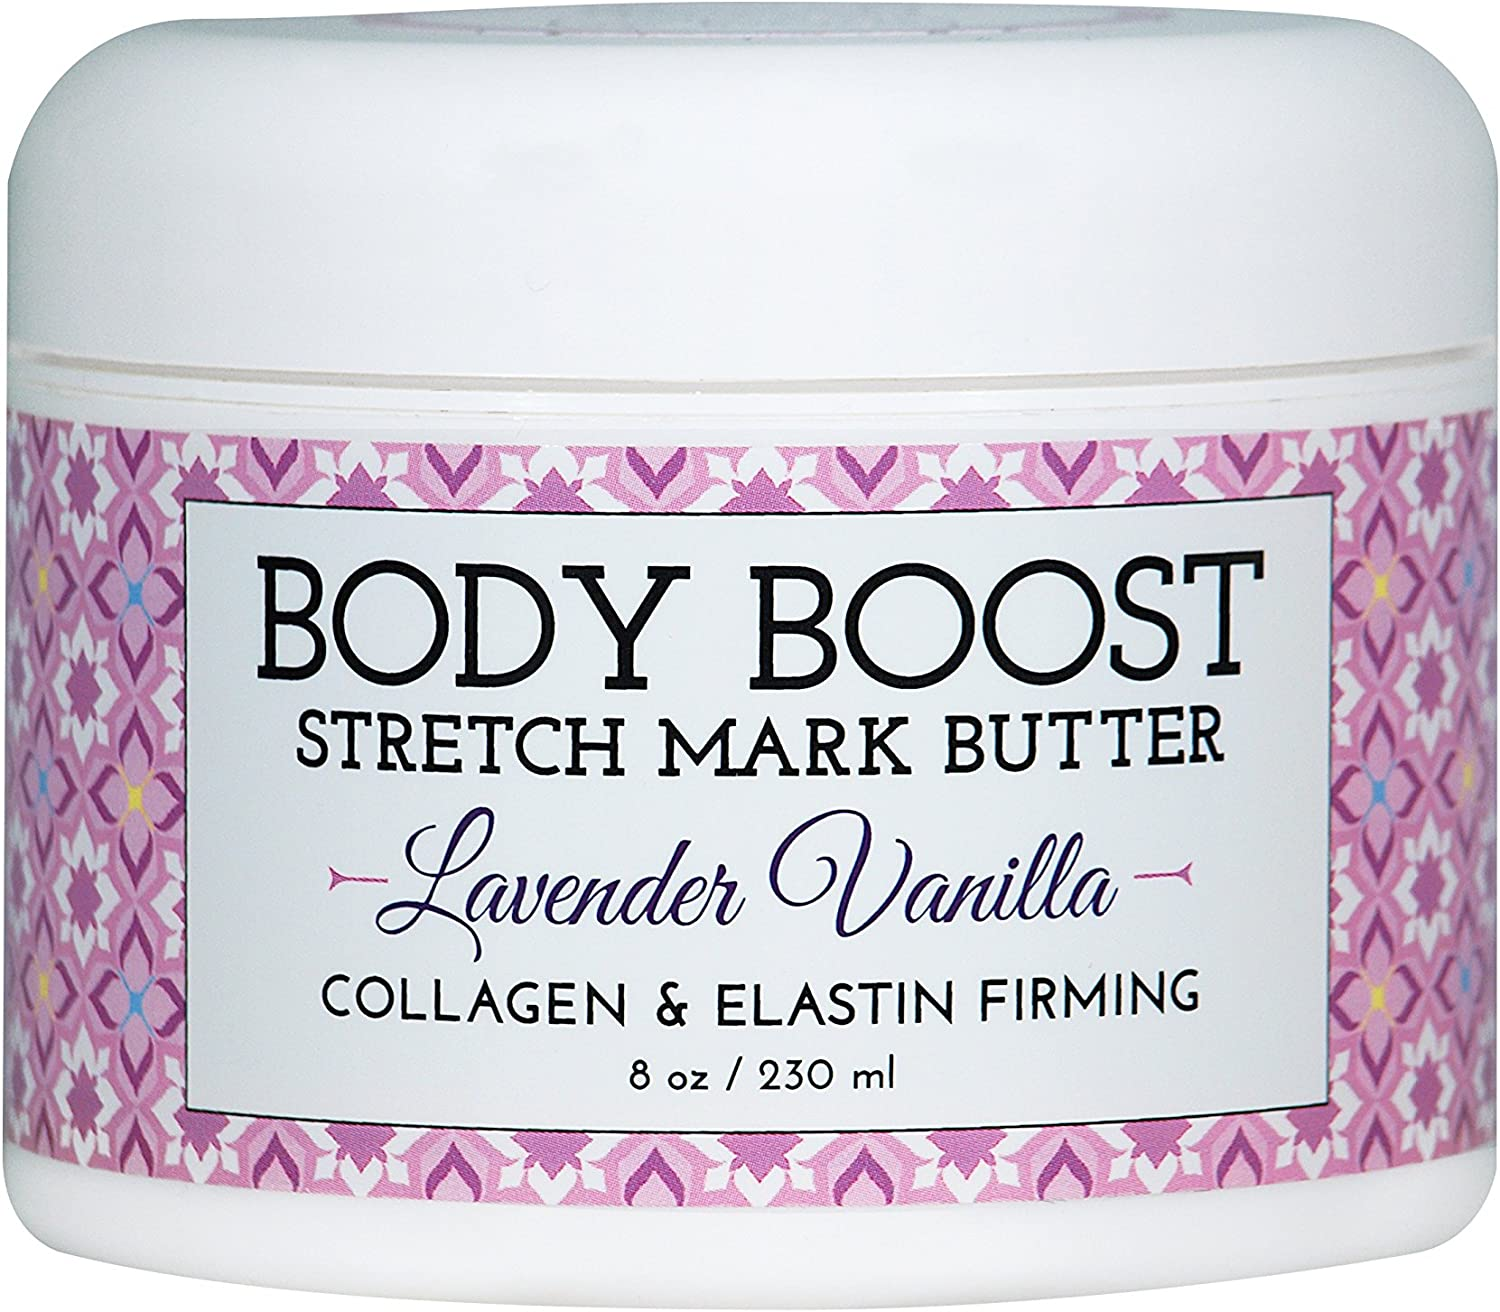 Body Boost Lavender Vanilla Stretch Mark Butter 8 oz.- Treat Stretch Marks and Scars- Pregnancy and Nursing Safe- with Shea Butter